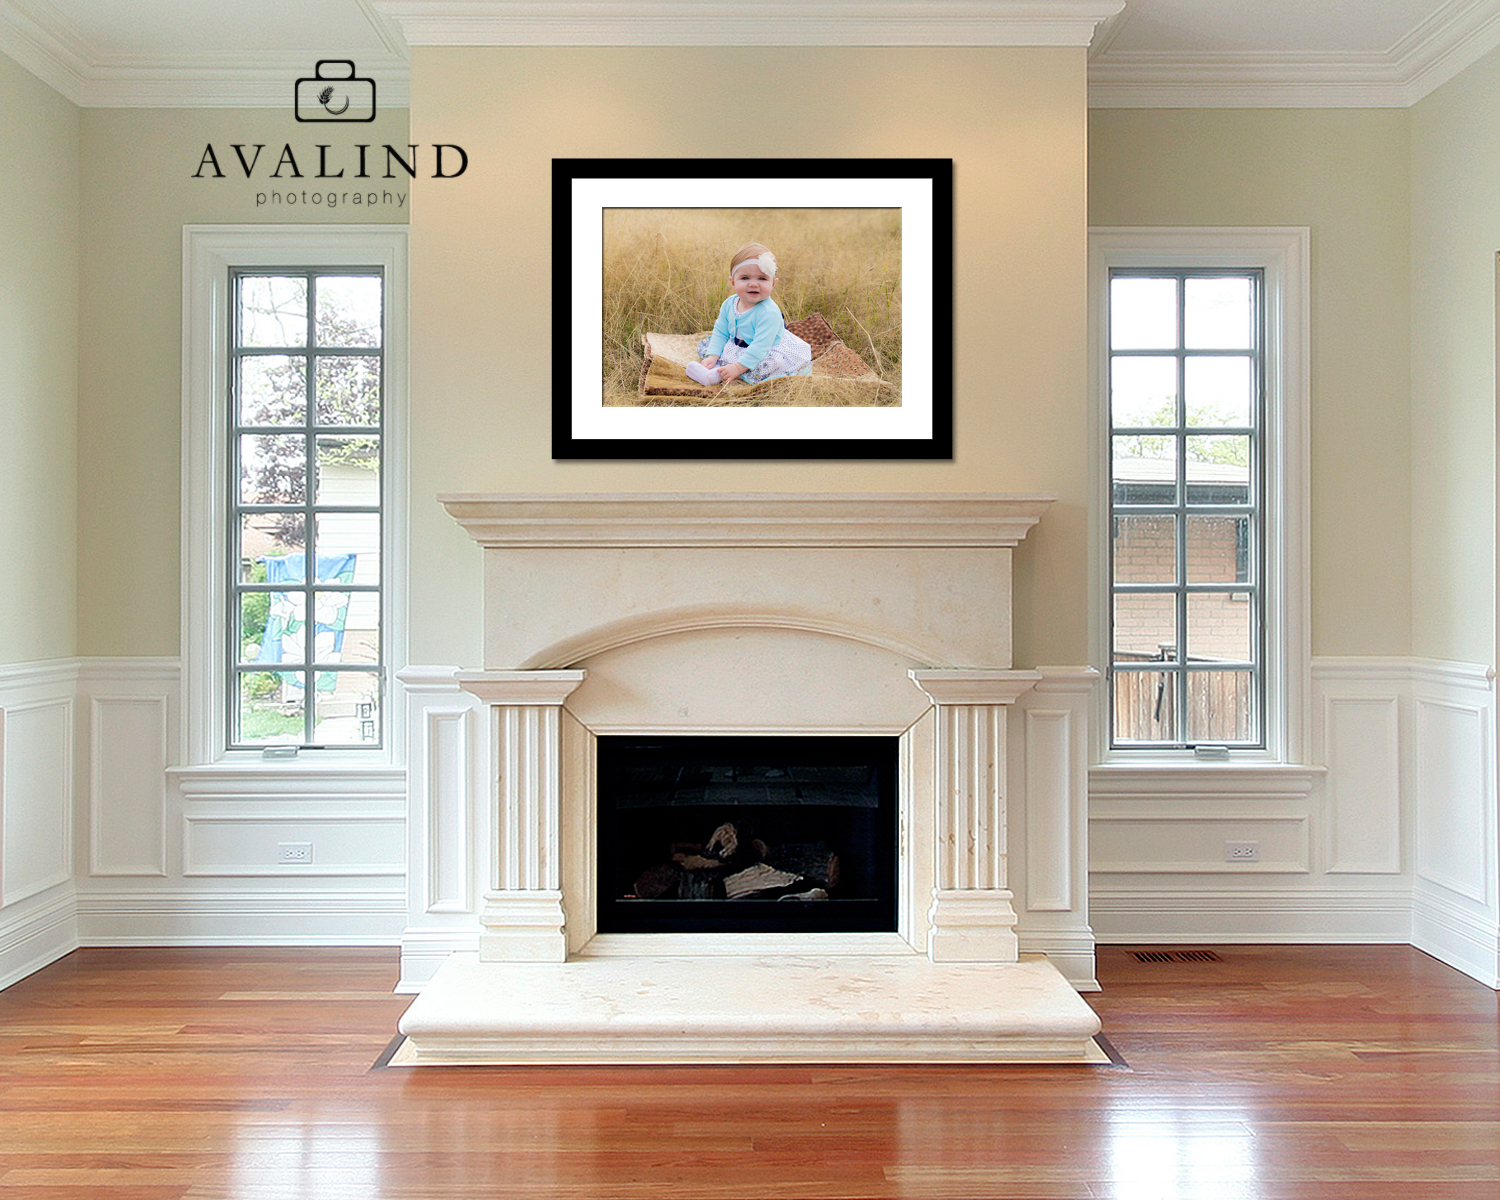 Wall single 20x30 frame fireplace.jpg